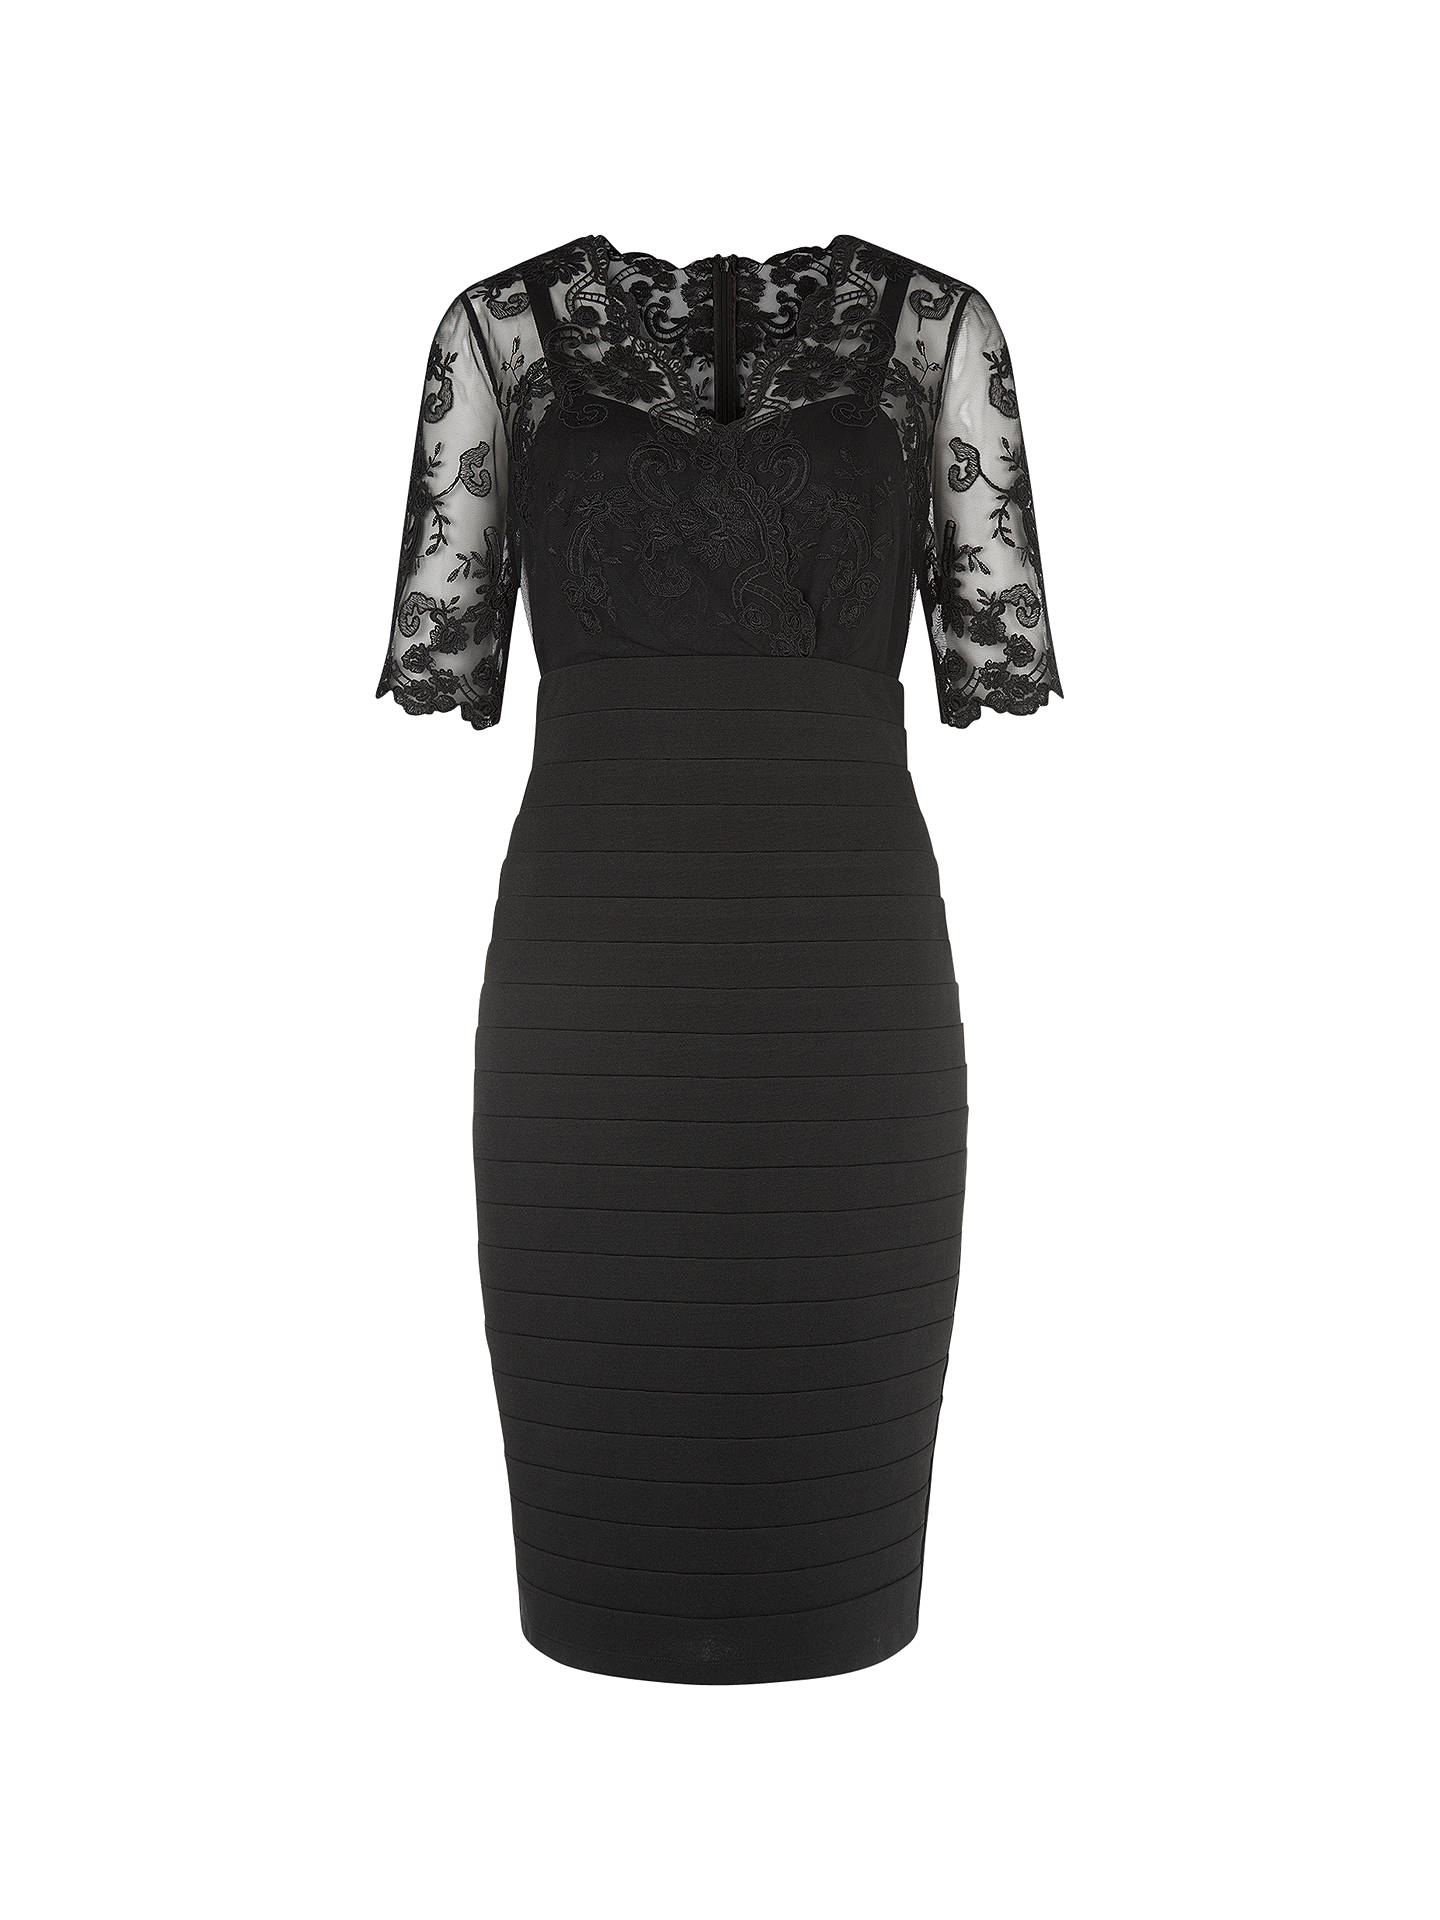 403c52cd8a4 Buy Kaliko Lace and Jersey Dress, Black, 8 Online at johnlewis.com ...